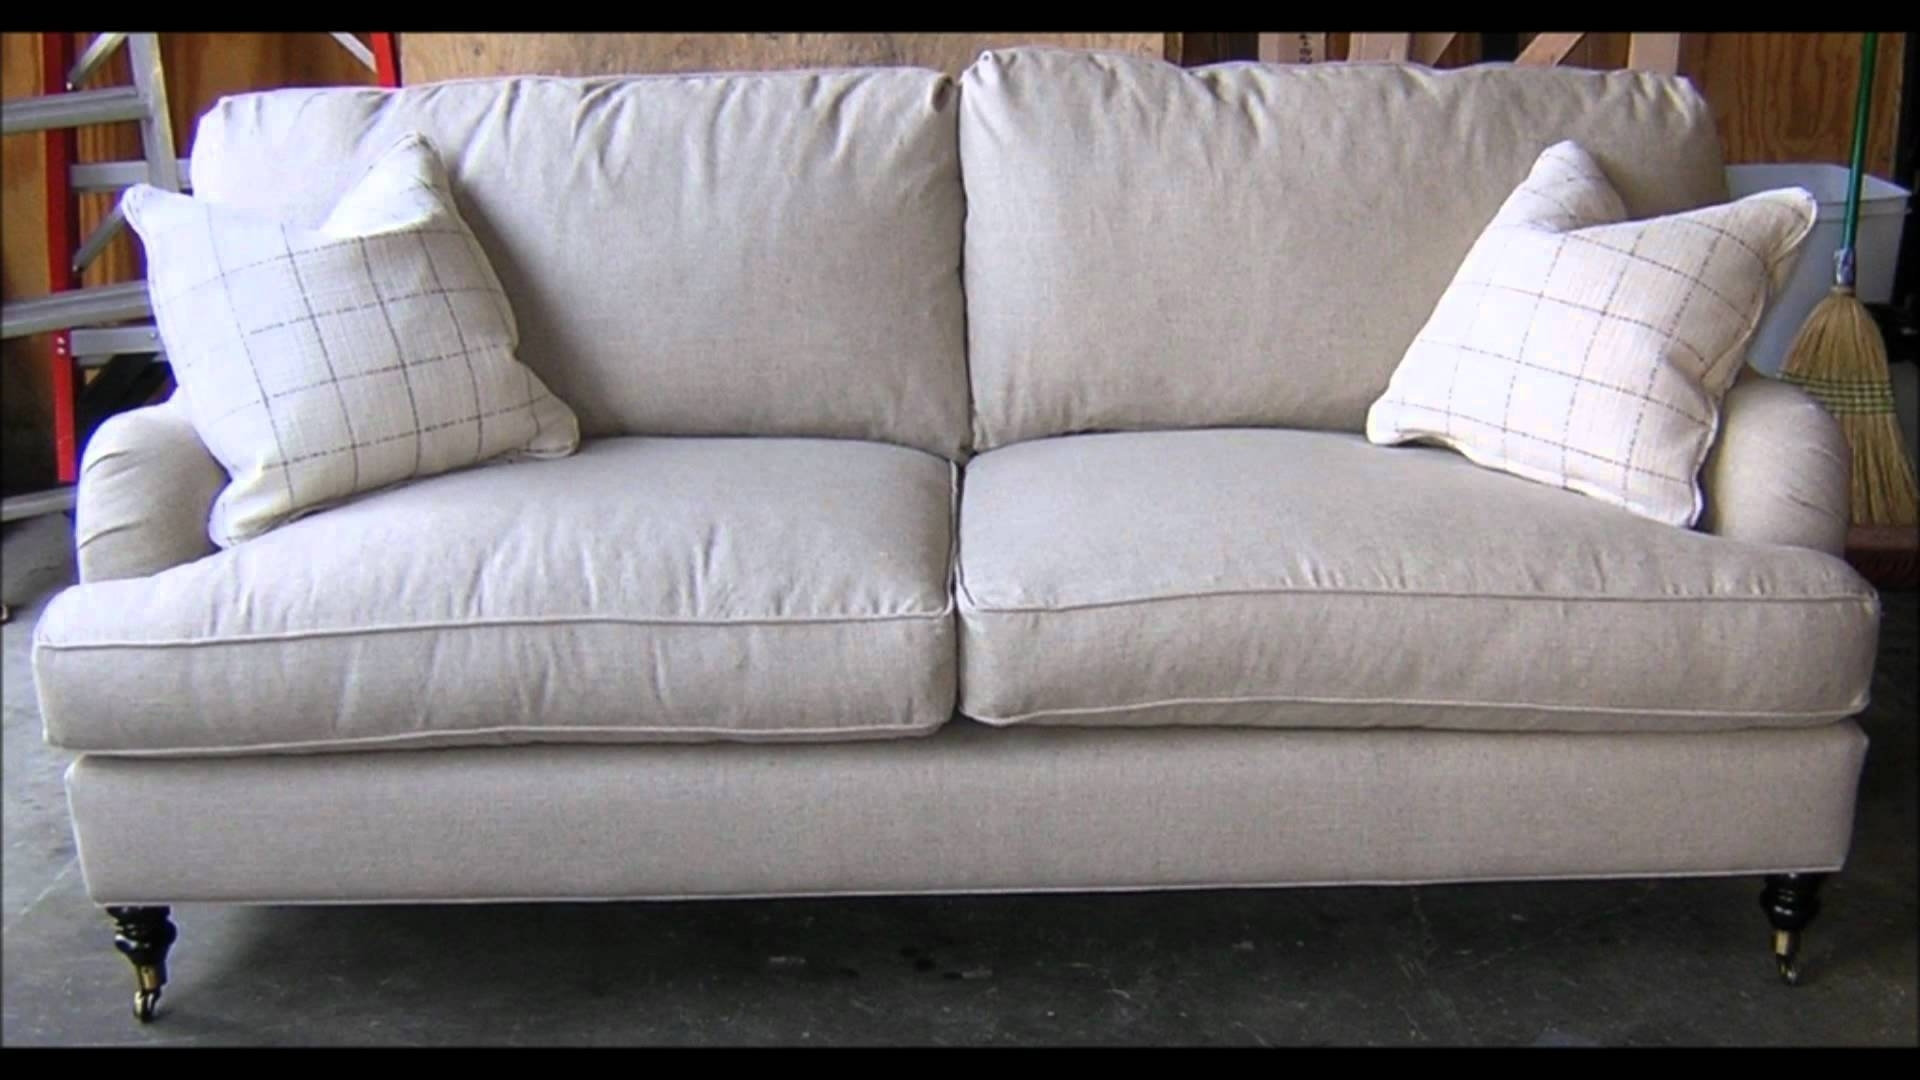 Widely Used Tuscaloosa Sectional Sofas Throughout Tuscaloosa Furniture Stores – Home Design Ideas And Pictures (View 16 of 20)